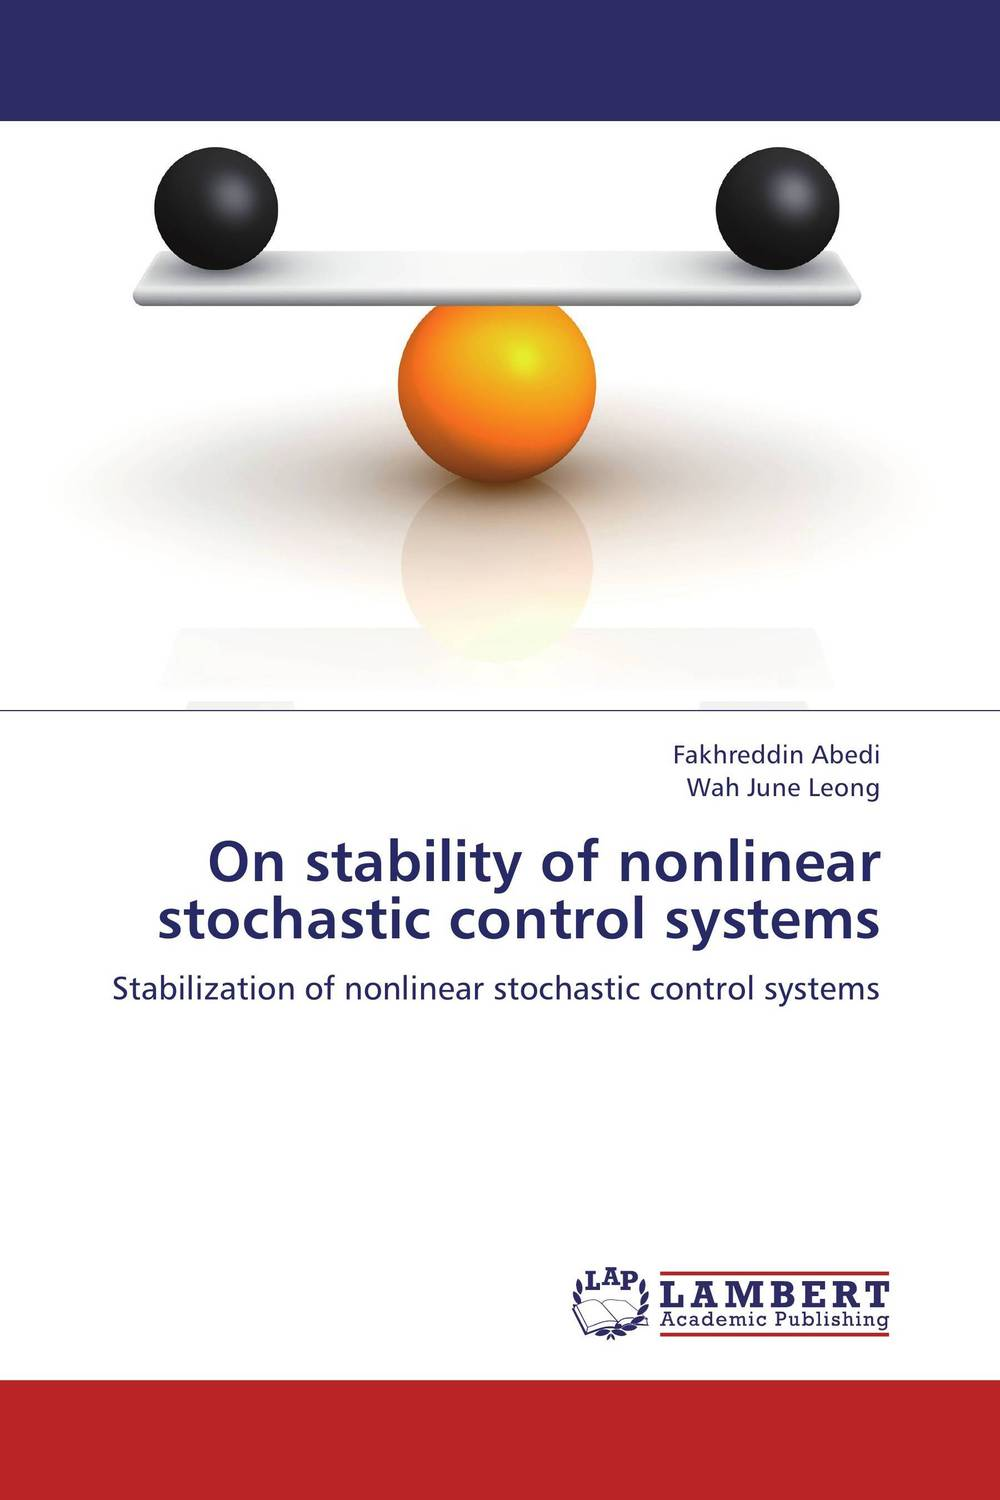 On stability of nonlinear stochastic control systems driven to distraction